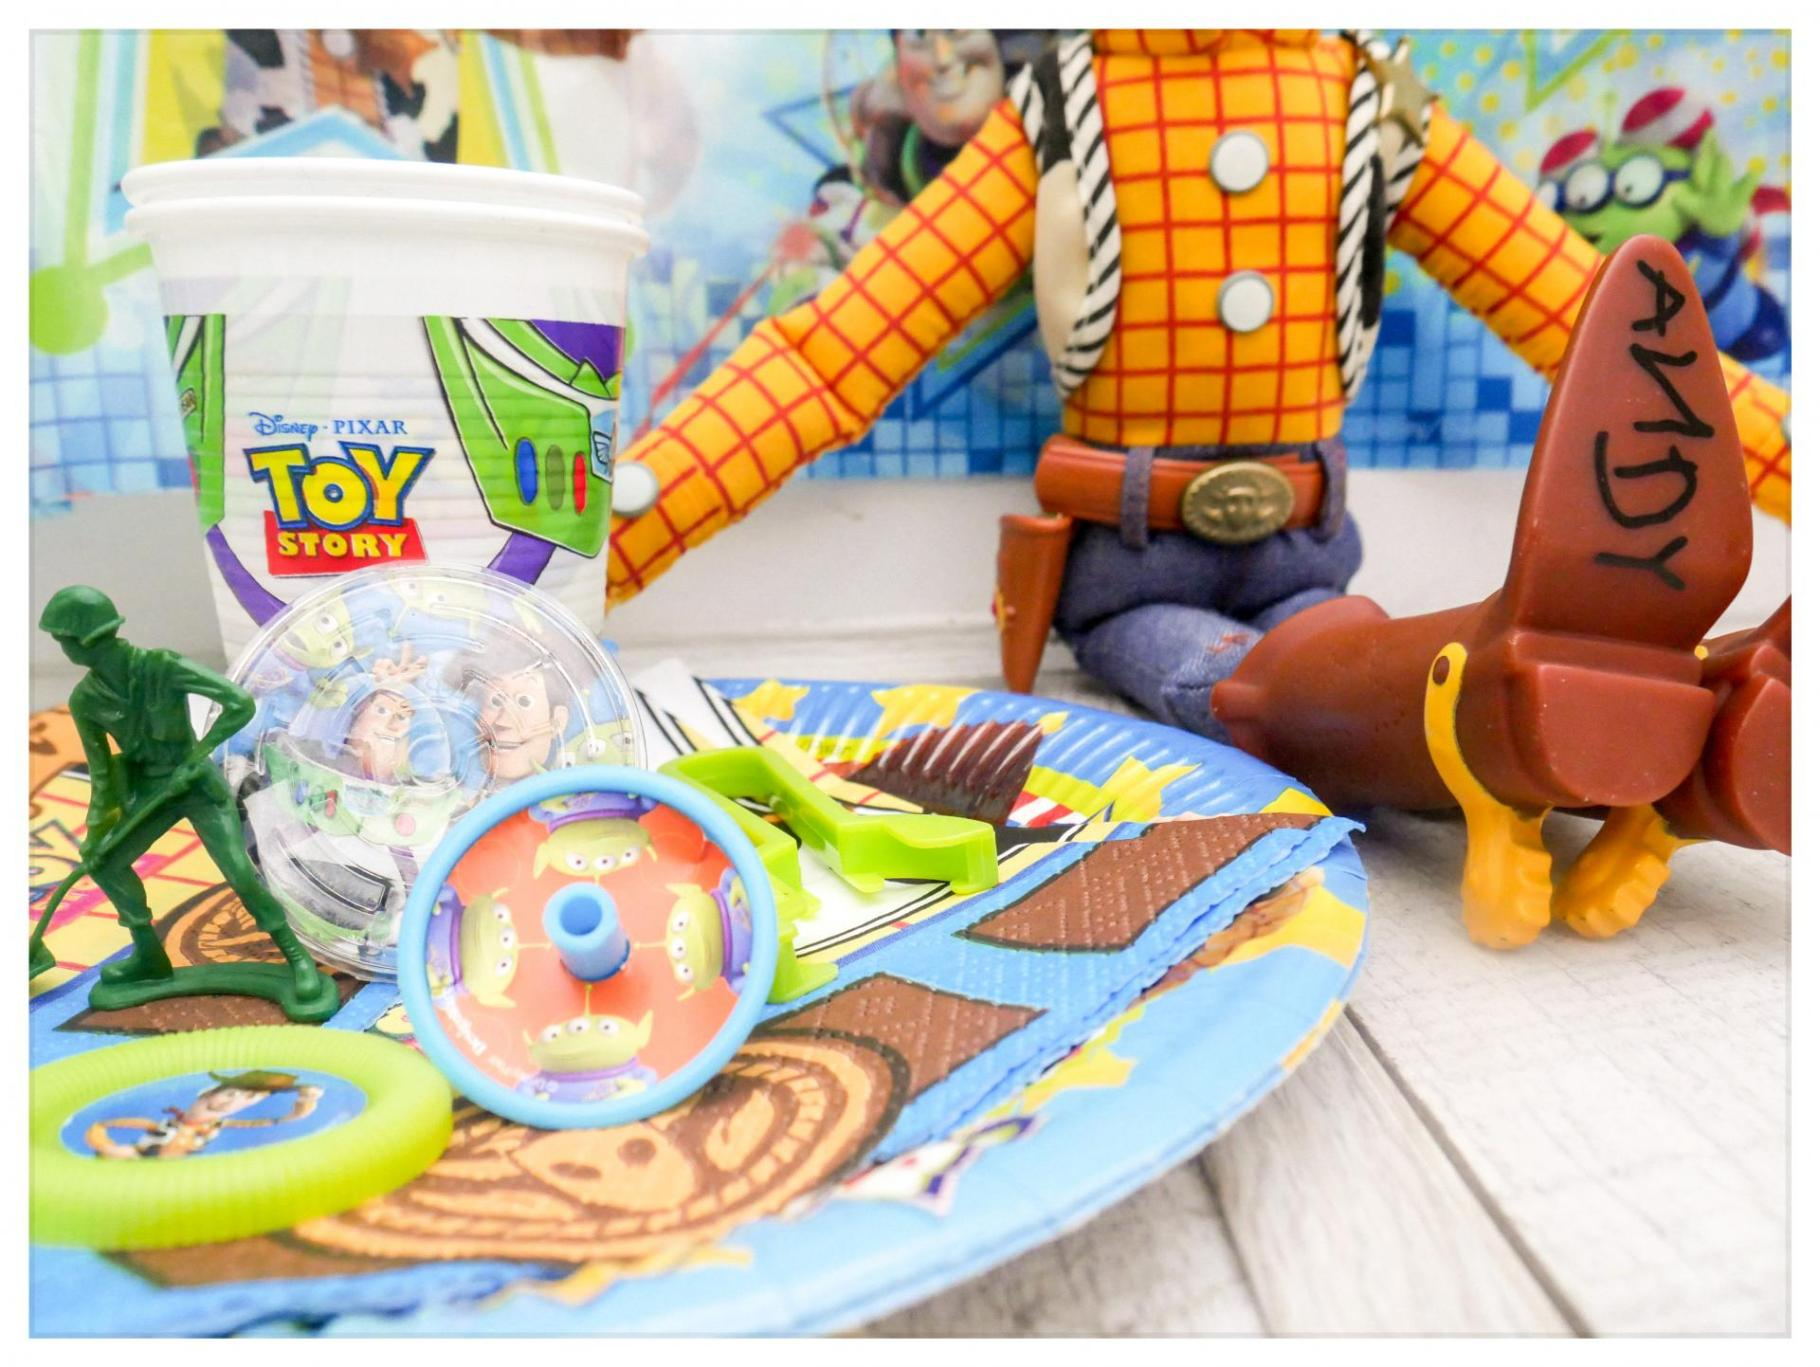 A Toy Story Party with 8 essential kids' party planning tips